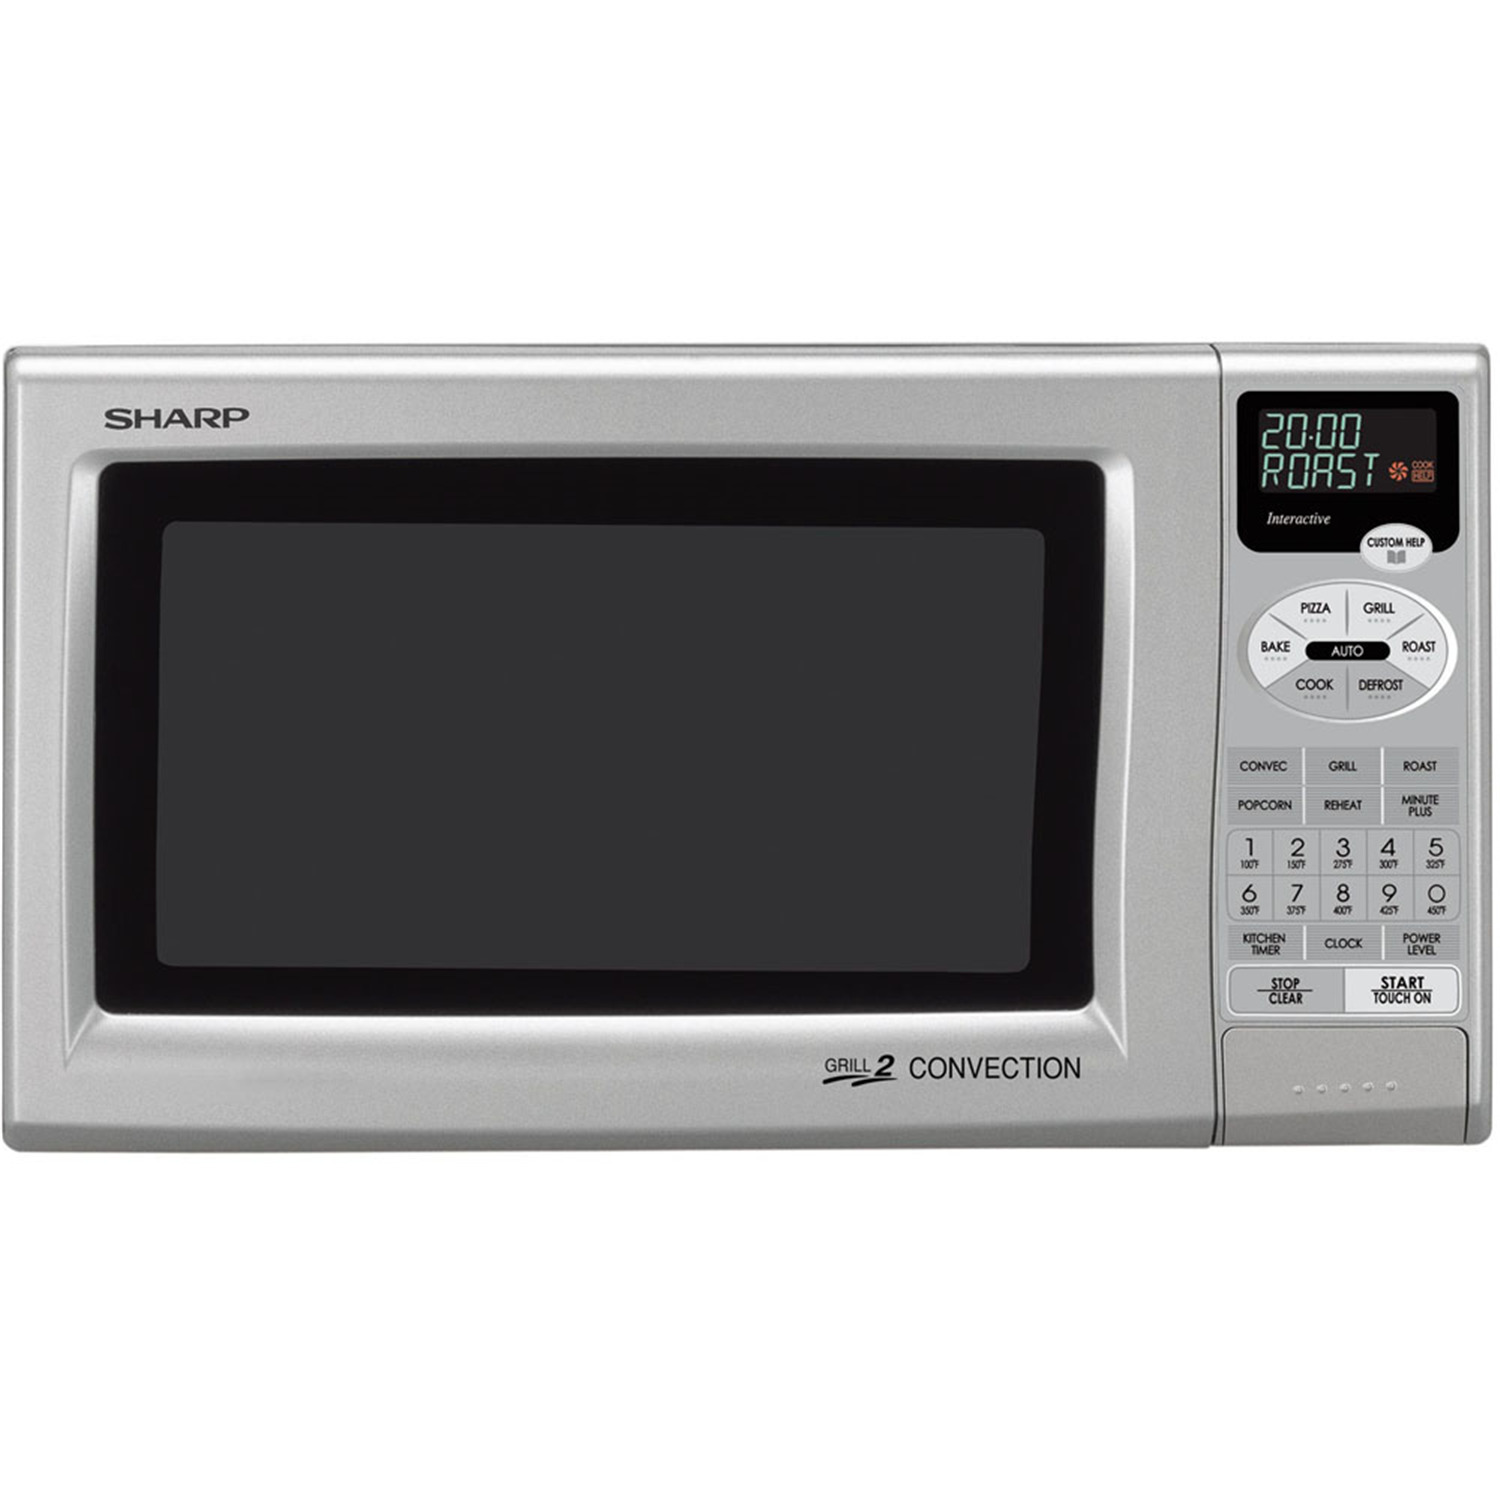 Countertop Microwave Oven With Convection And Grill : ... cu. ft. 900W Grill 2 Compact Countertop Convection Microwave Oven